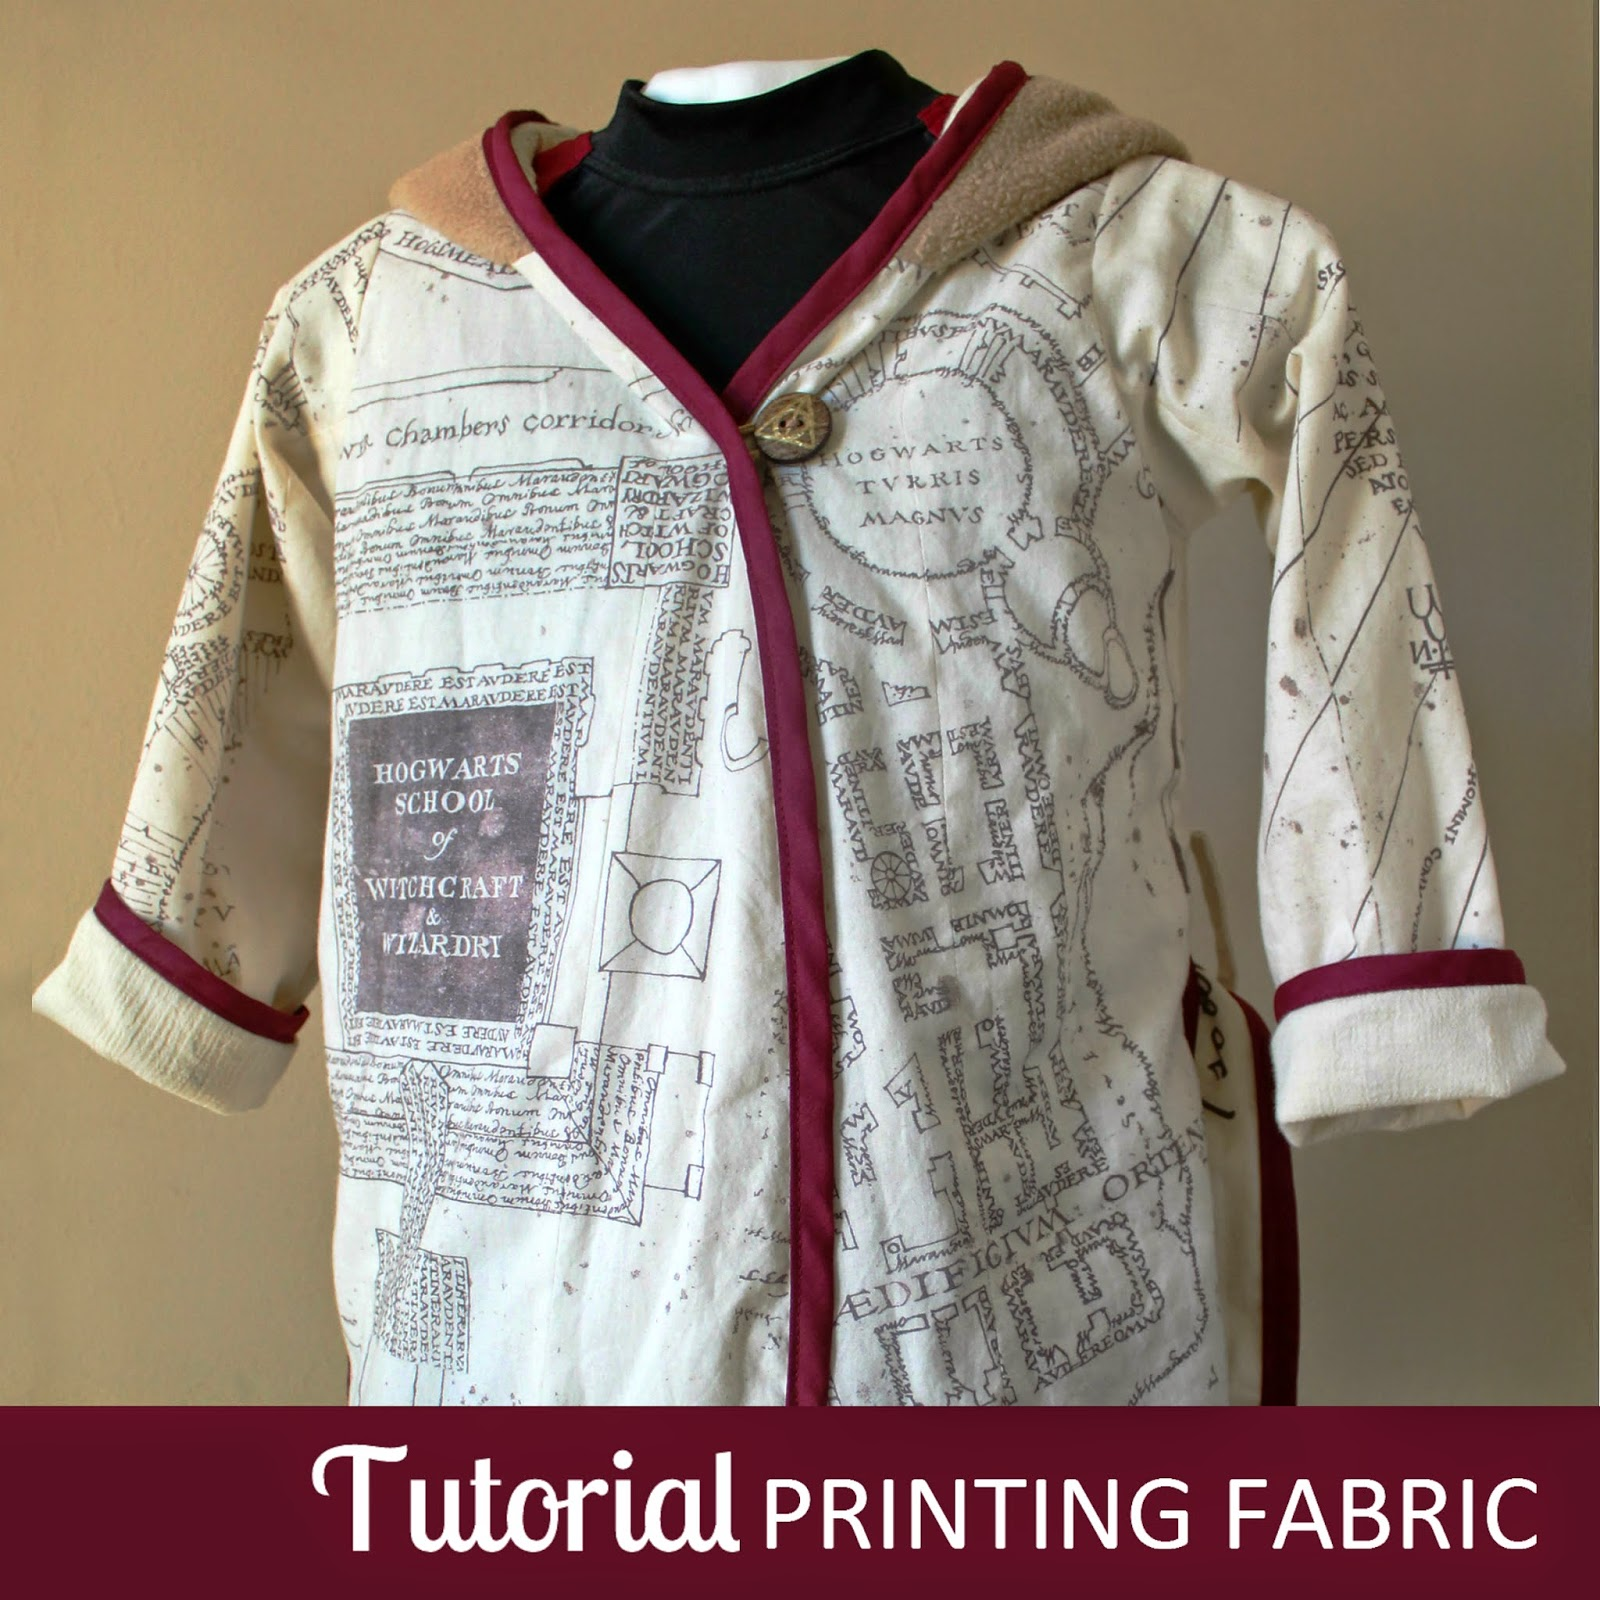 TUTORIAL: Fabric Printing | Learn how to print your own fabric with an ink-jet printer in this quick tutorial. | The Inspired Wren